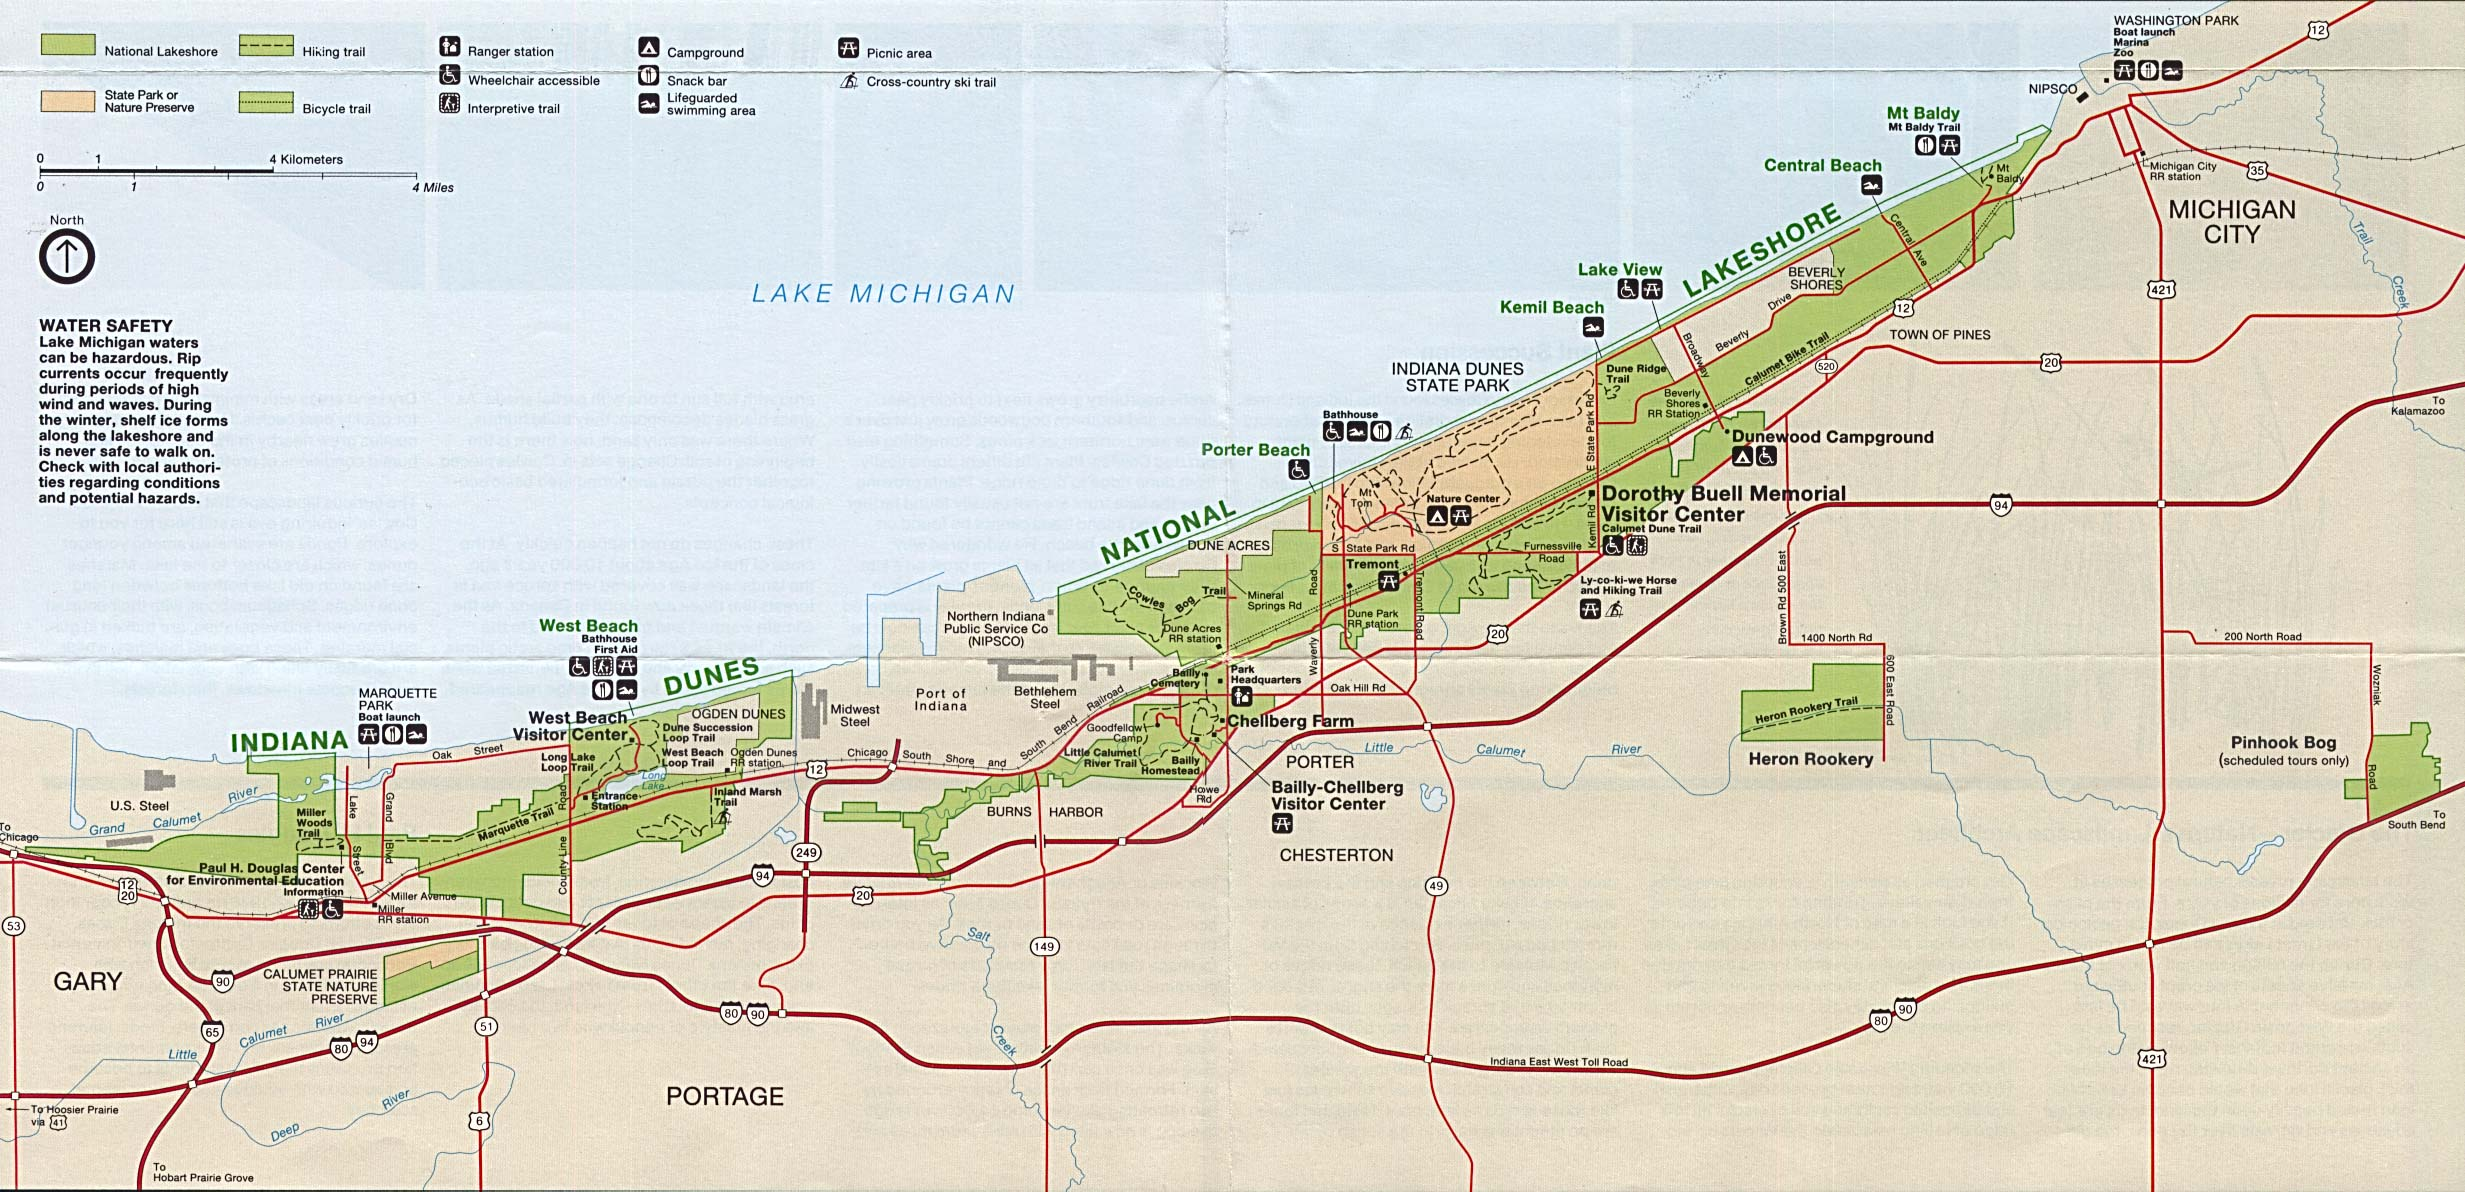 Indiana Dunes National Lakeshore Park Map, Indiana, United States